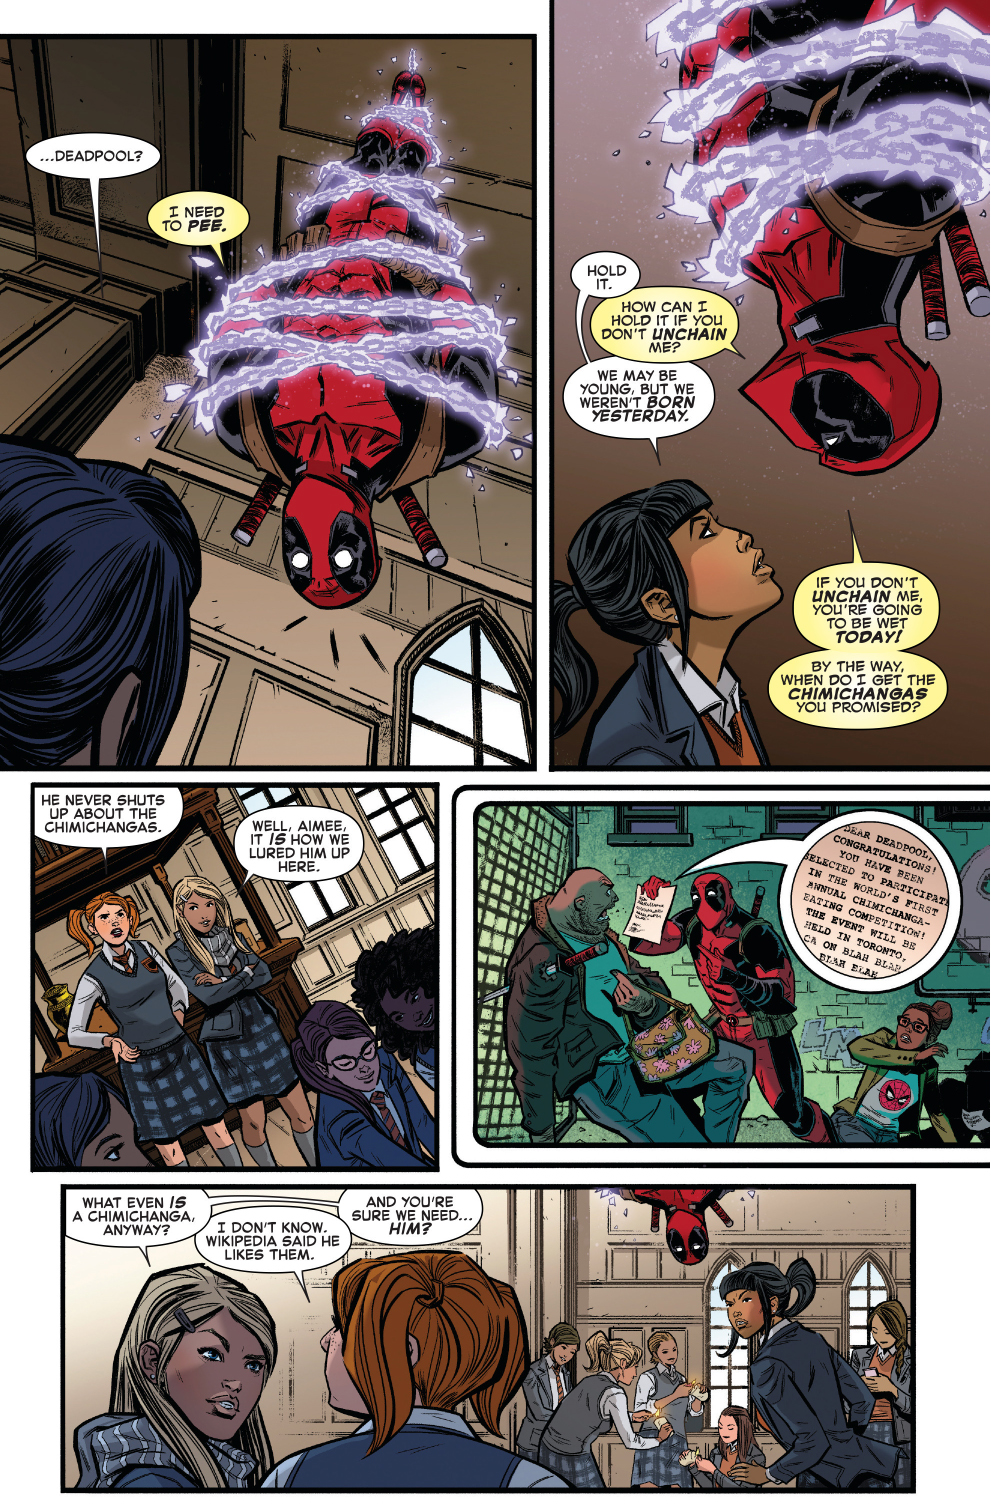 Spider Man Is Deadpools Heartmate ...